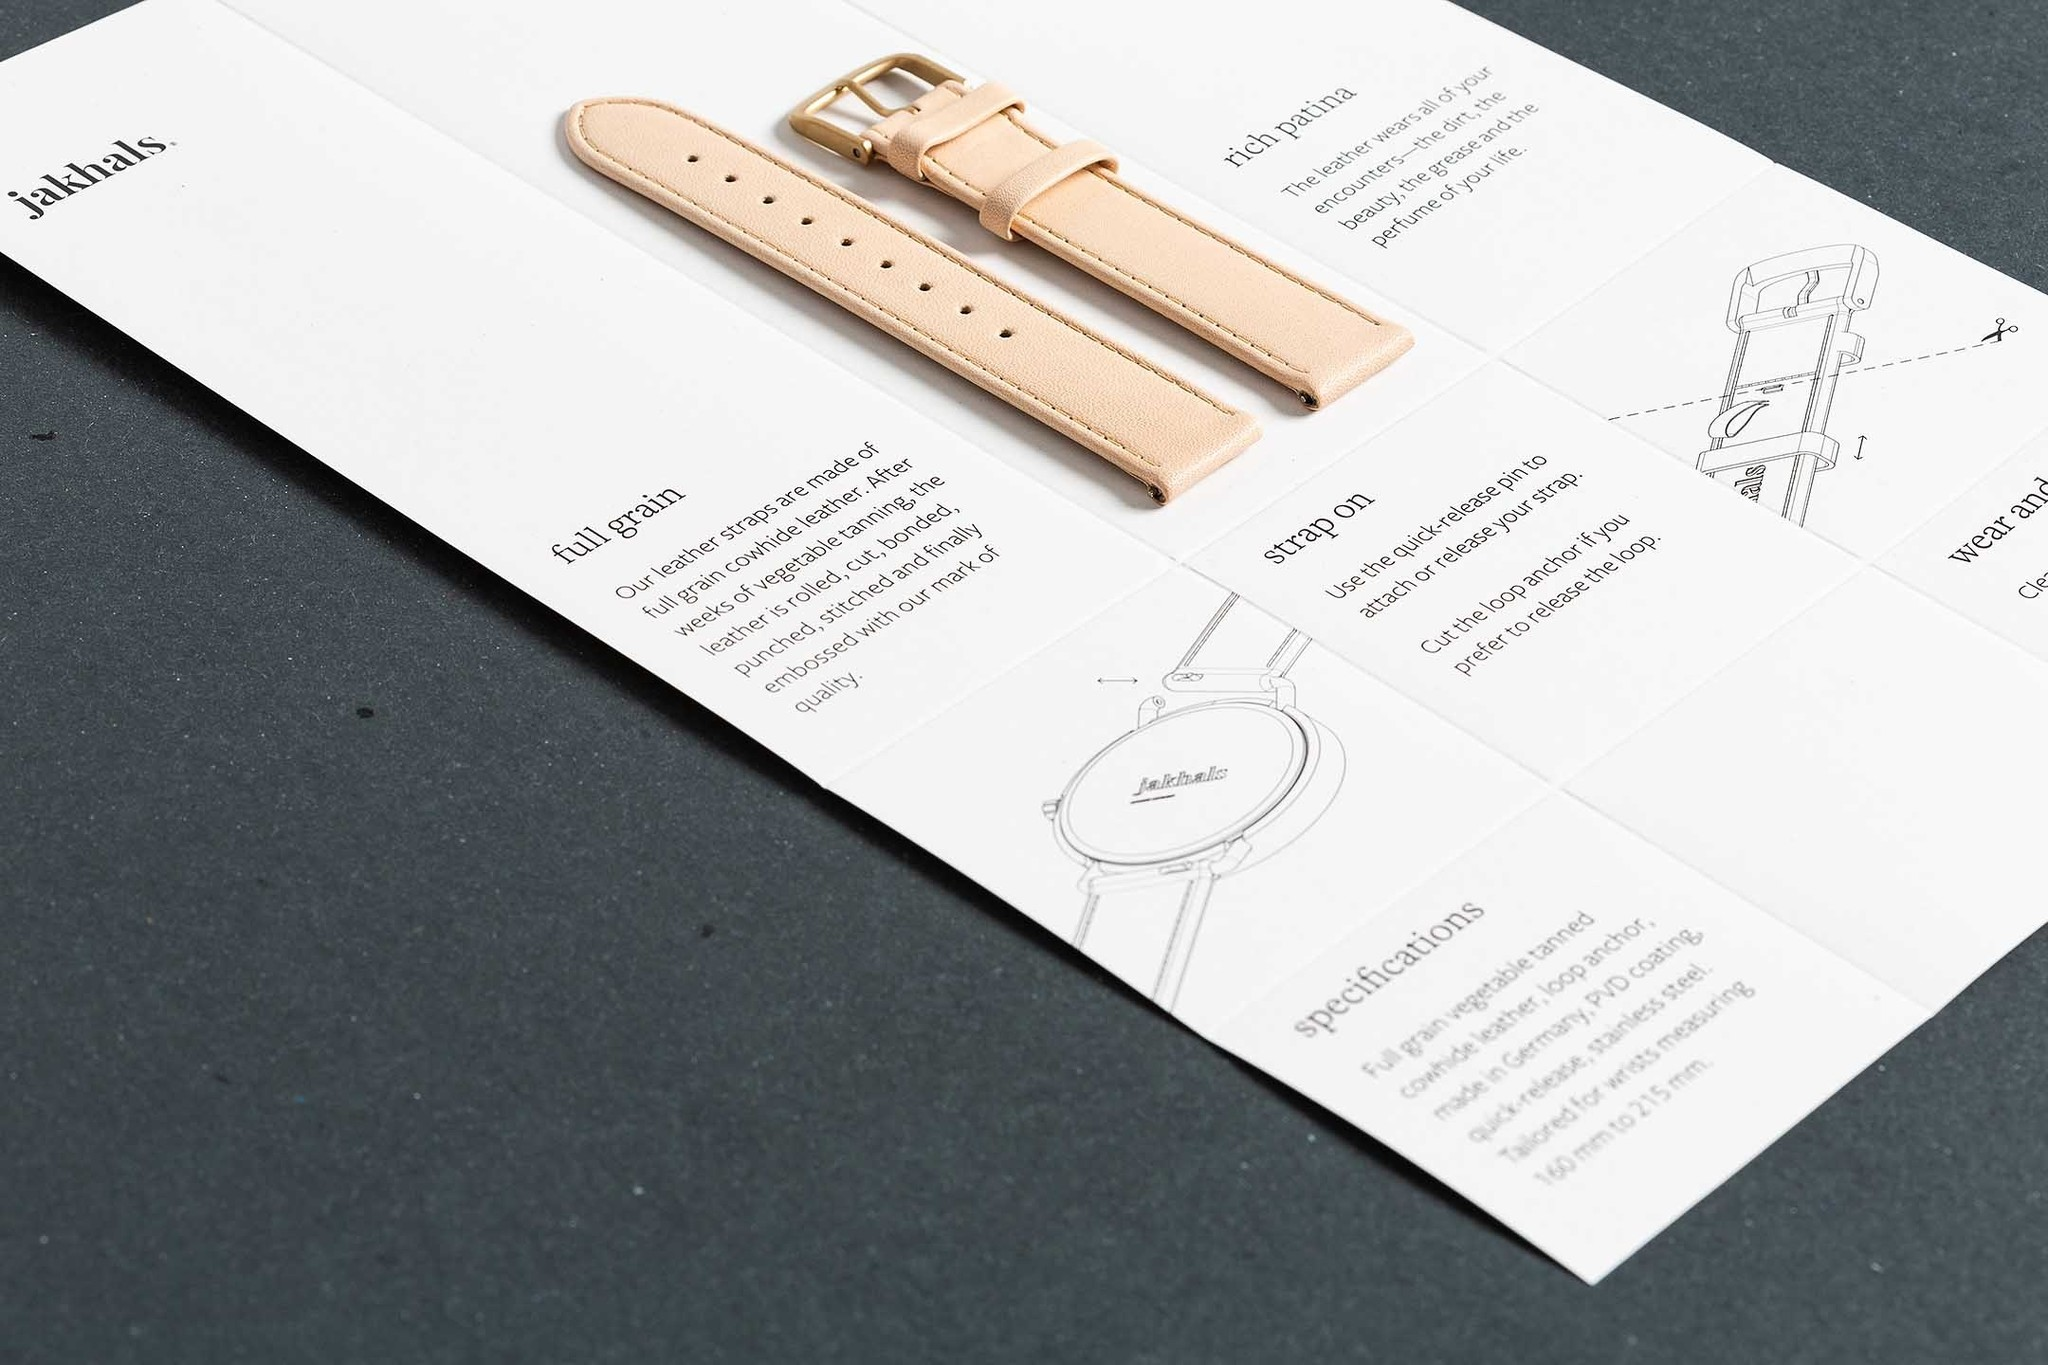 Our watches are wrapped in a beautiful recycled paper